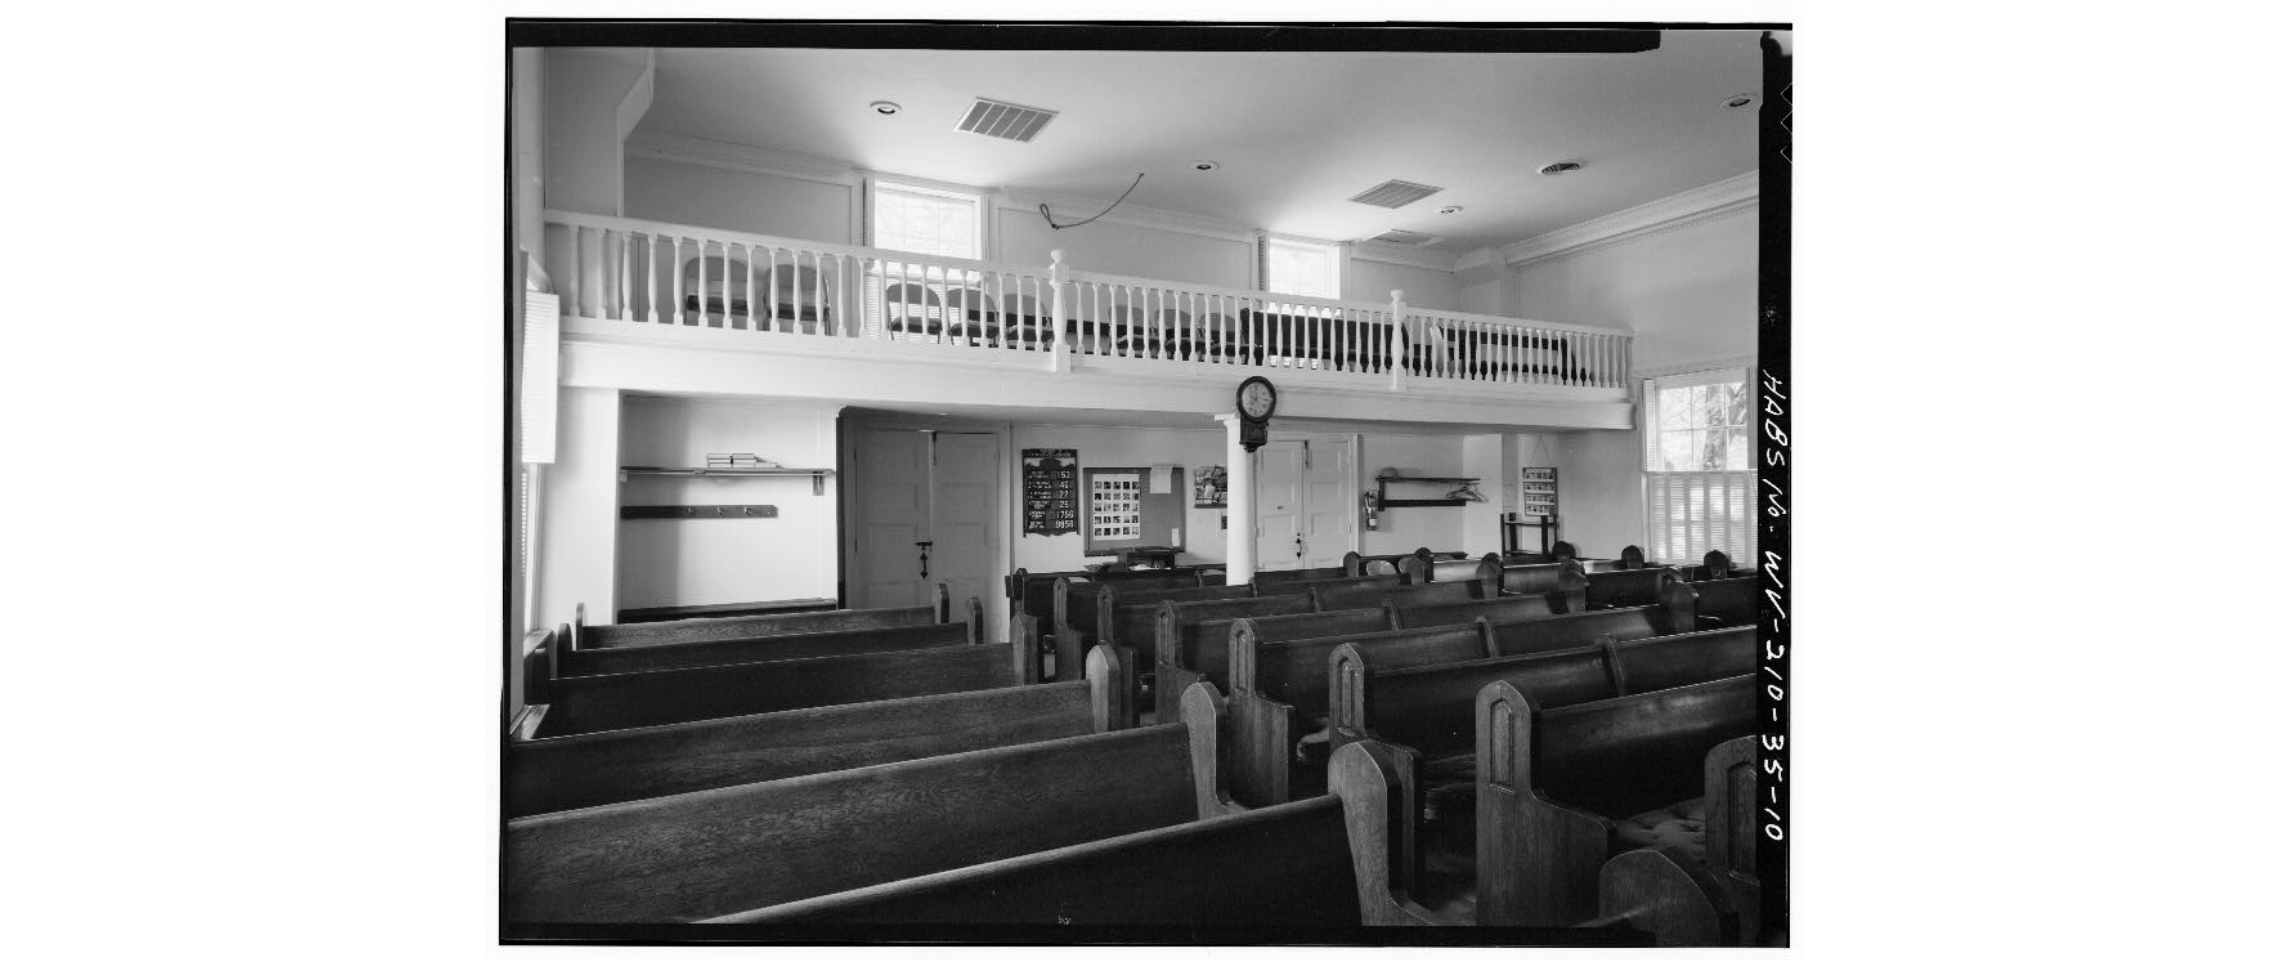 Interior of the church, showing the balcony, 1980